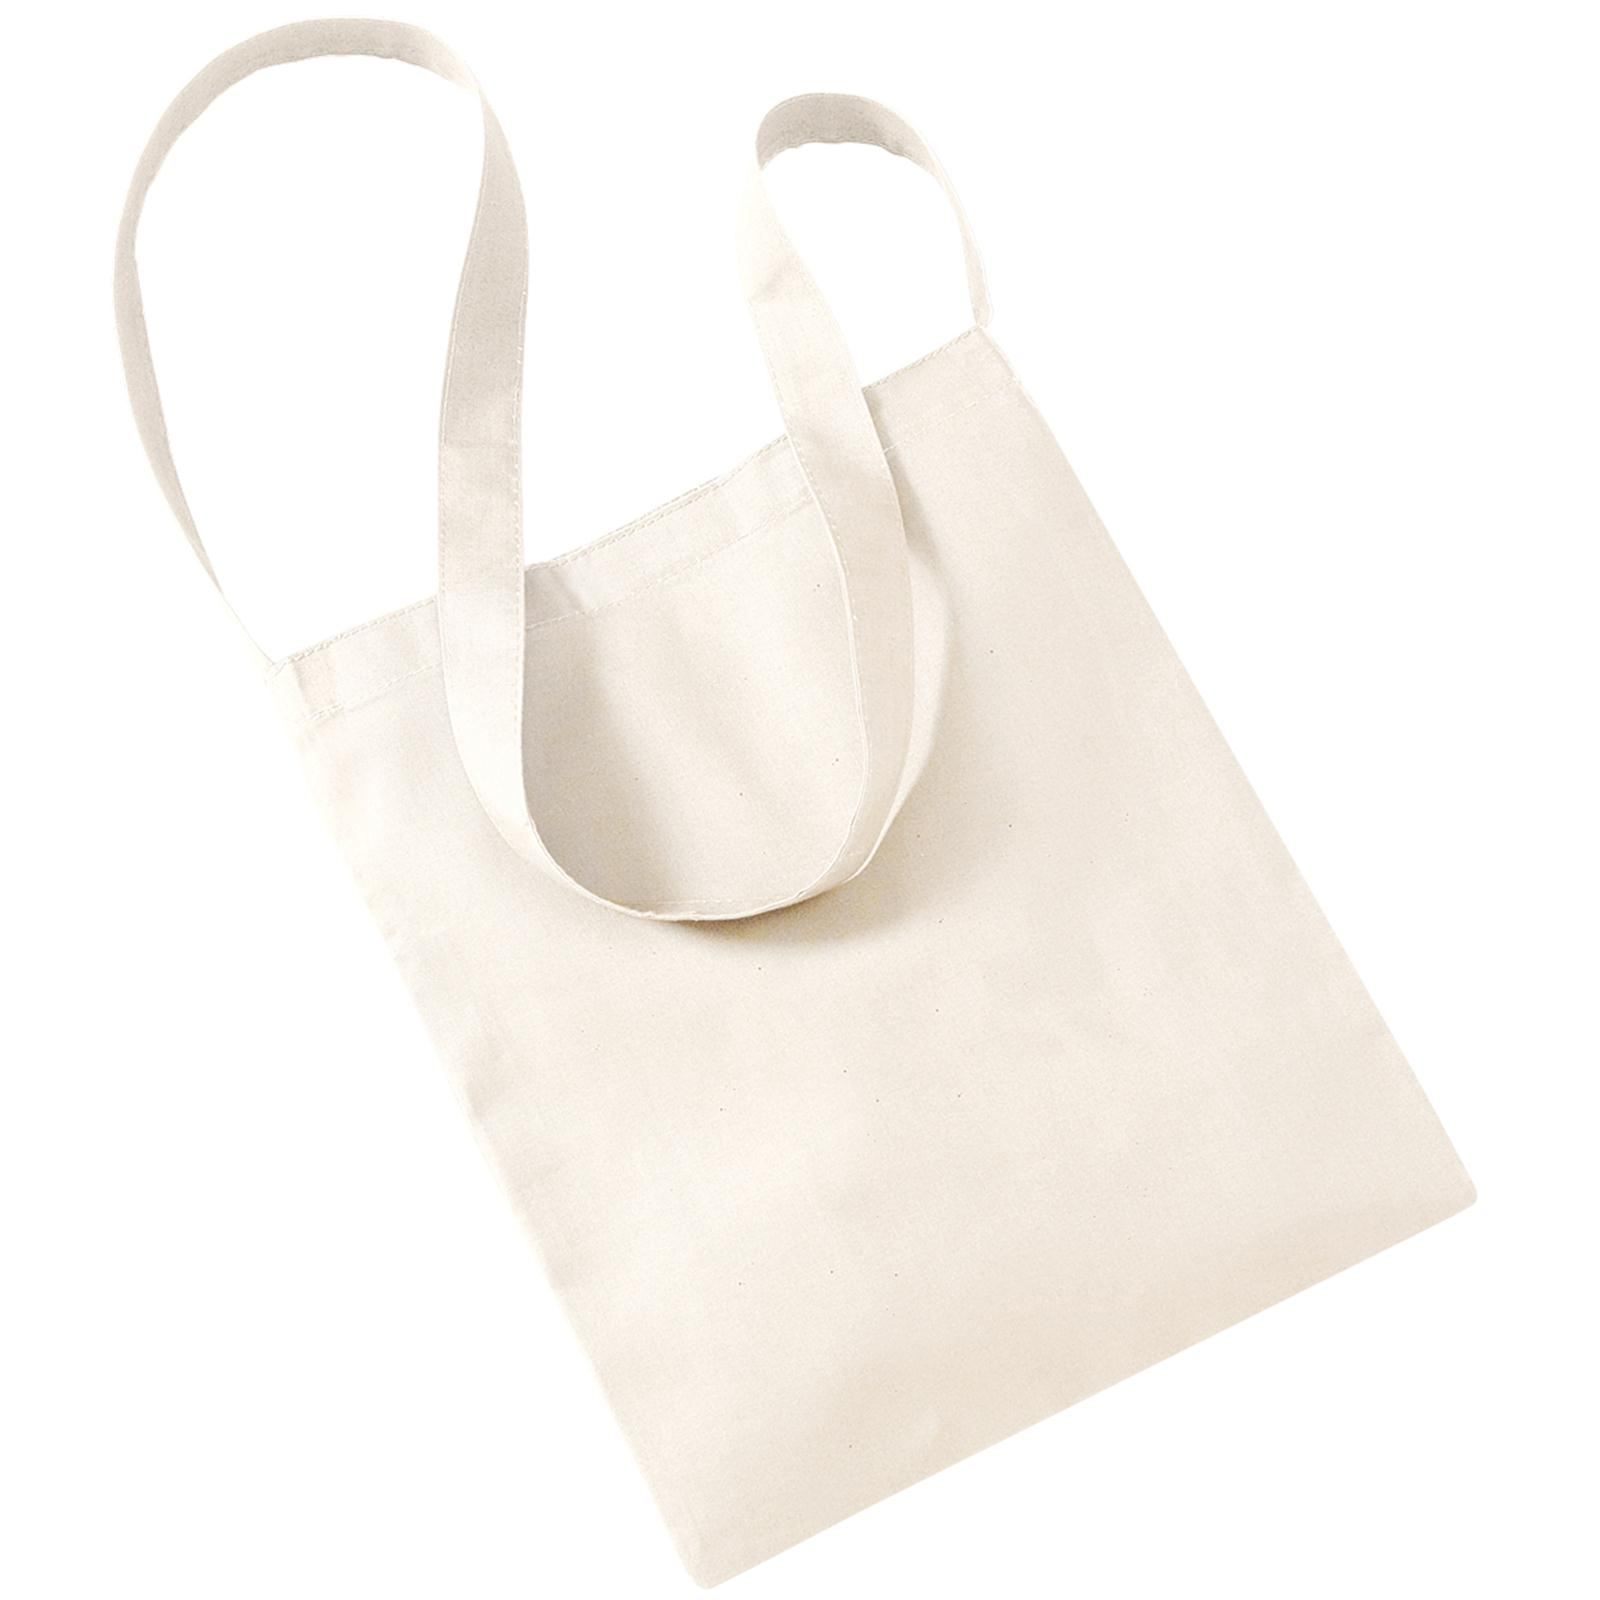 b4a535f2f6d Details about New WESTFORD MILL Organic Cotton Sling Tote Shoulder Bag in  Natural